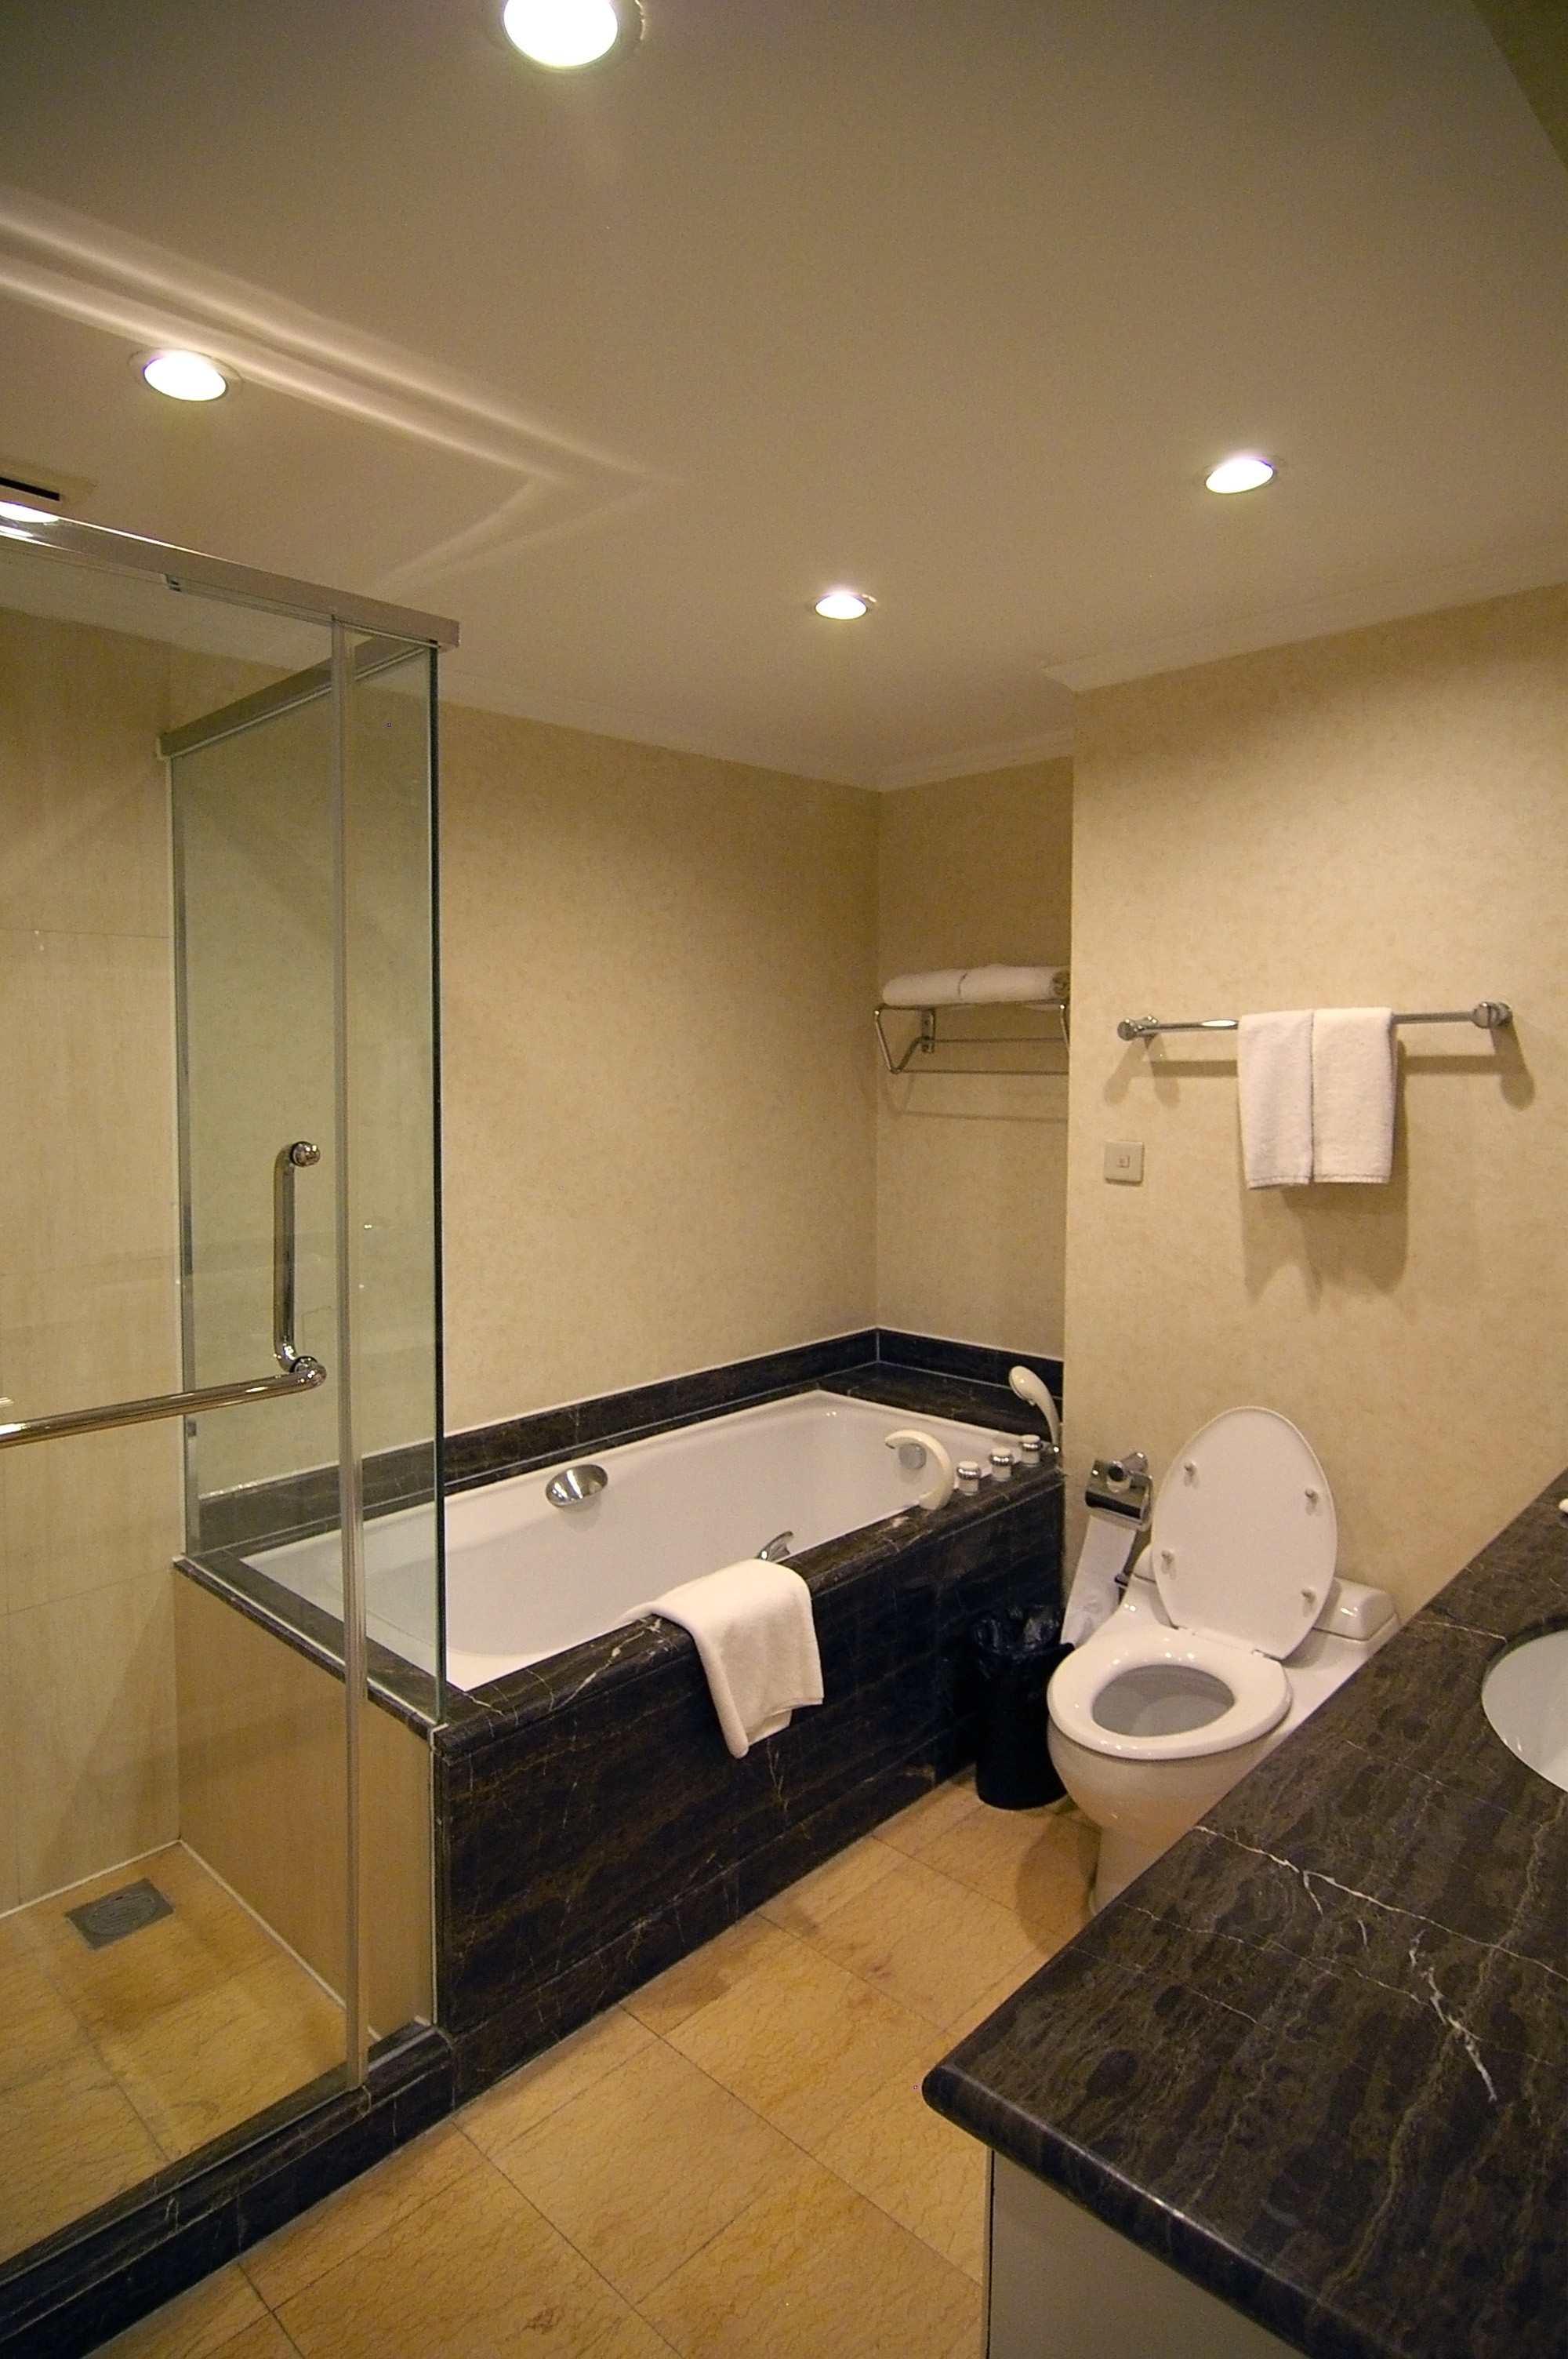 Free Stock Photo 2475 Moden Hotel Bathroom Freeimageslive